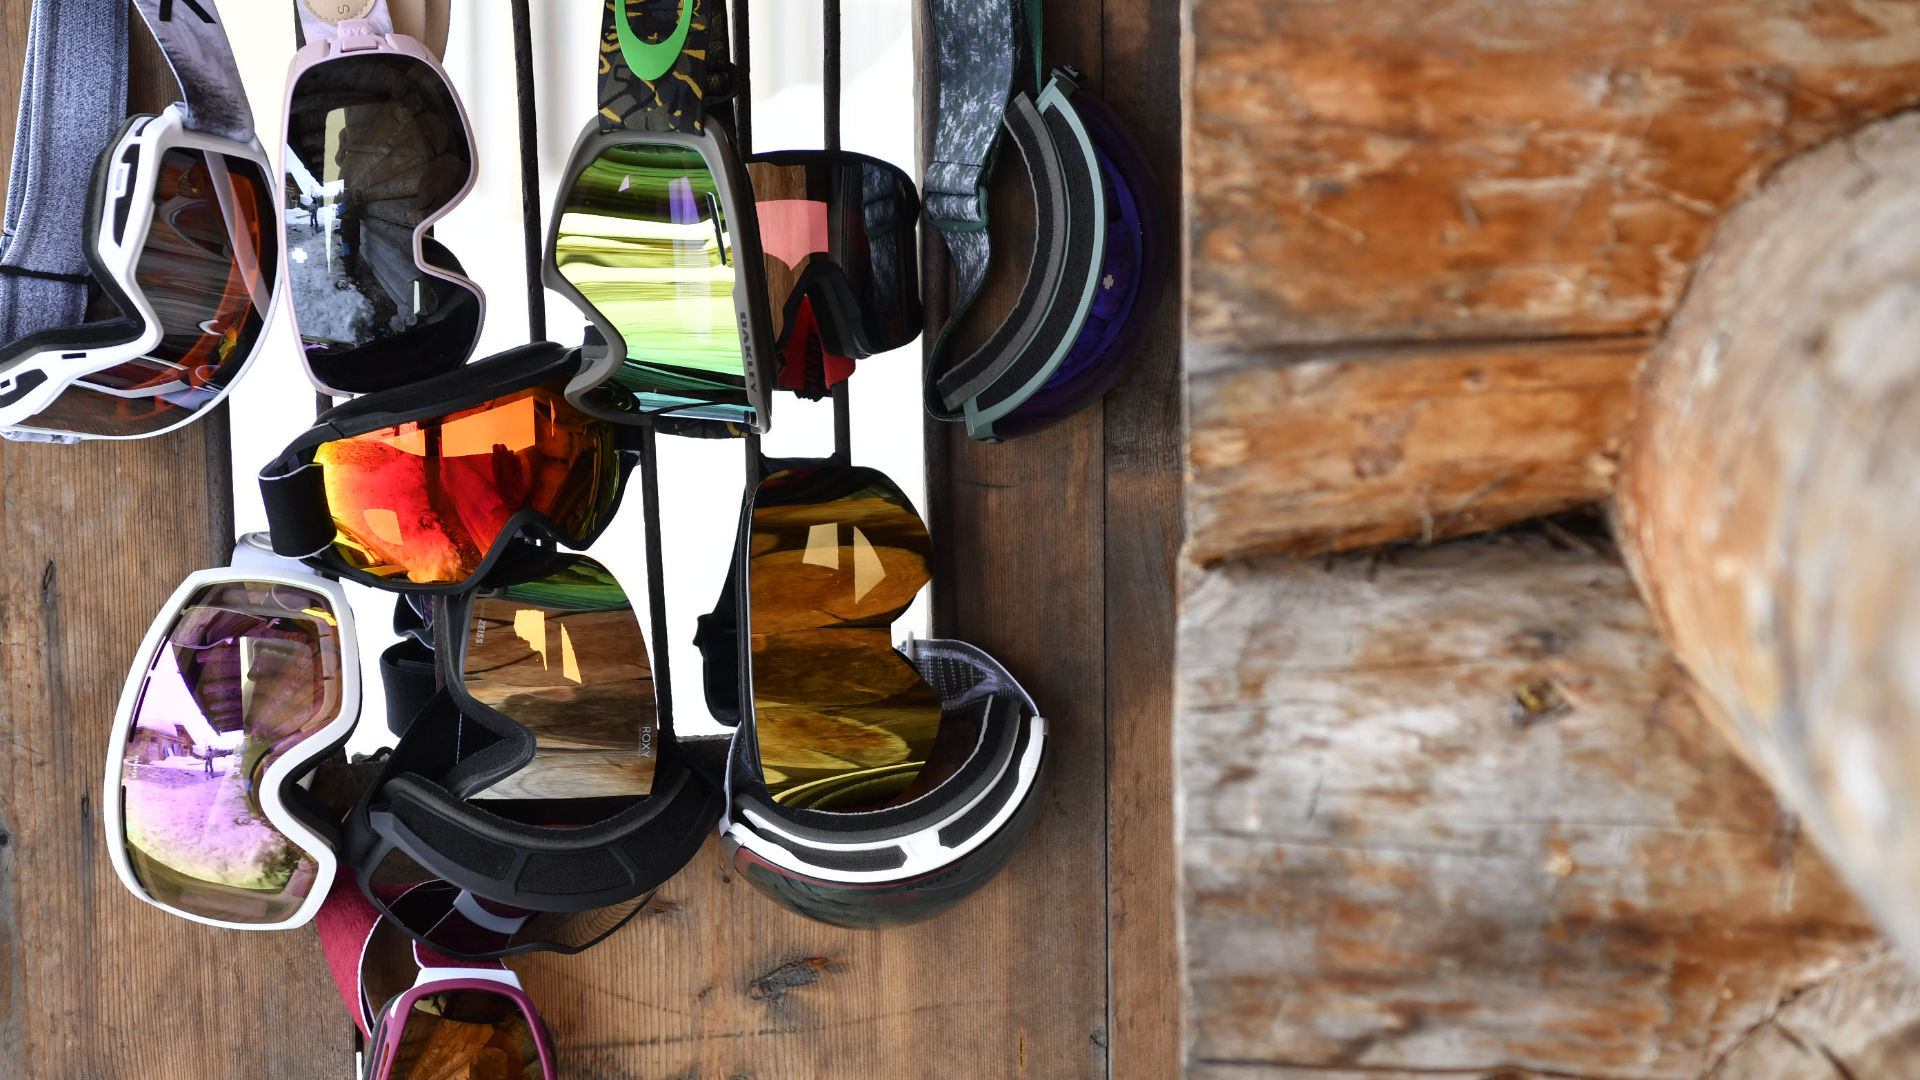 Selection of goggles with double lenses